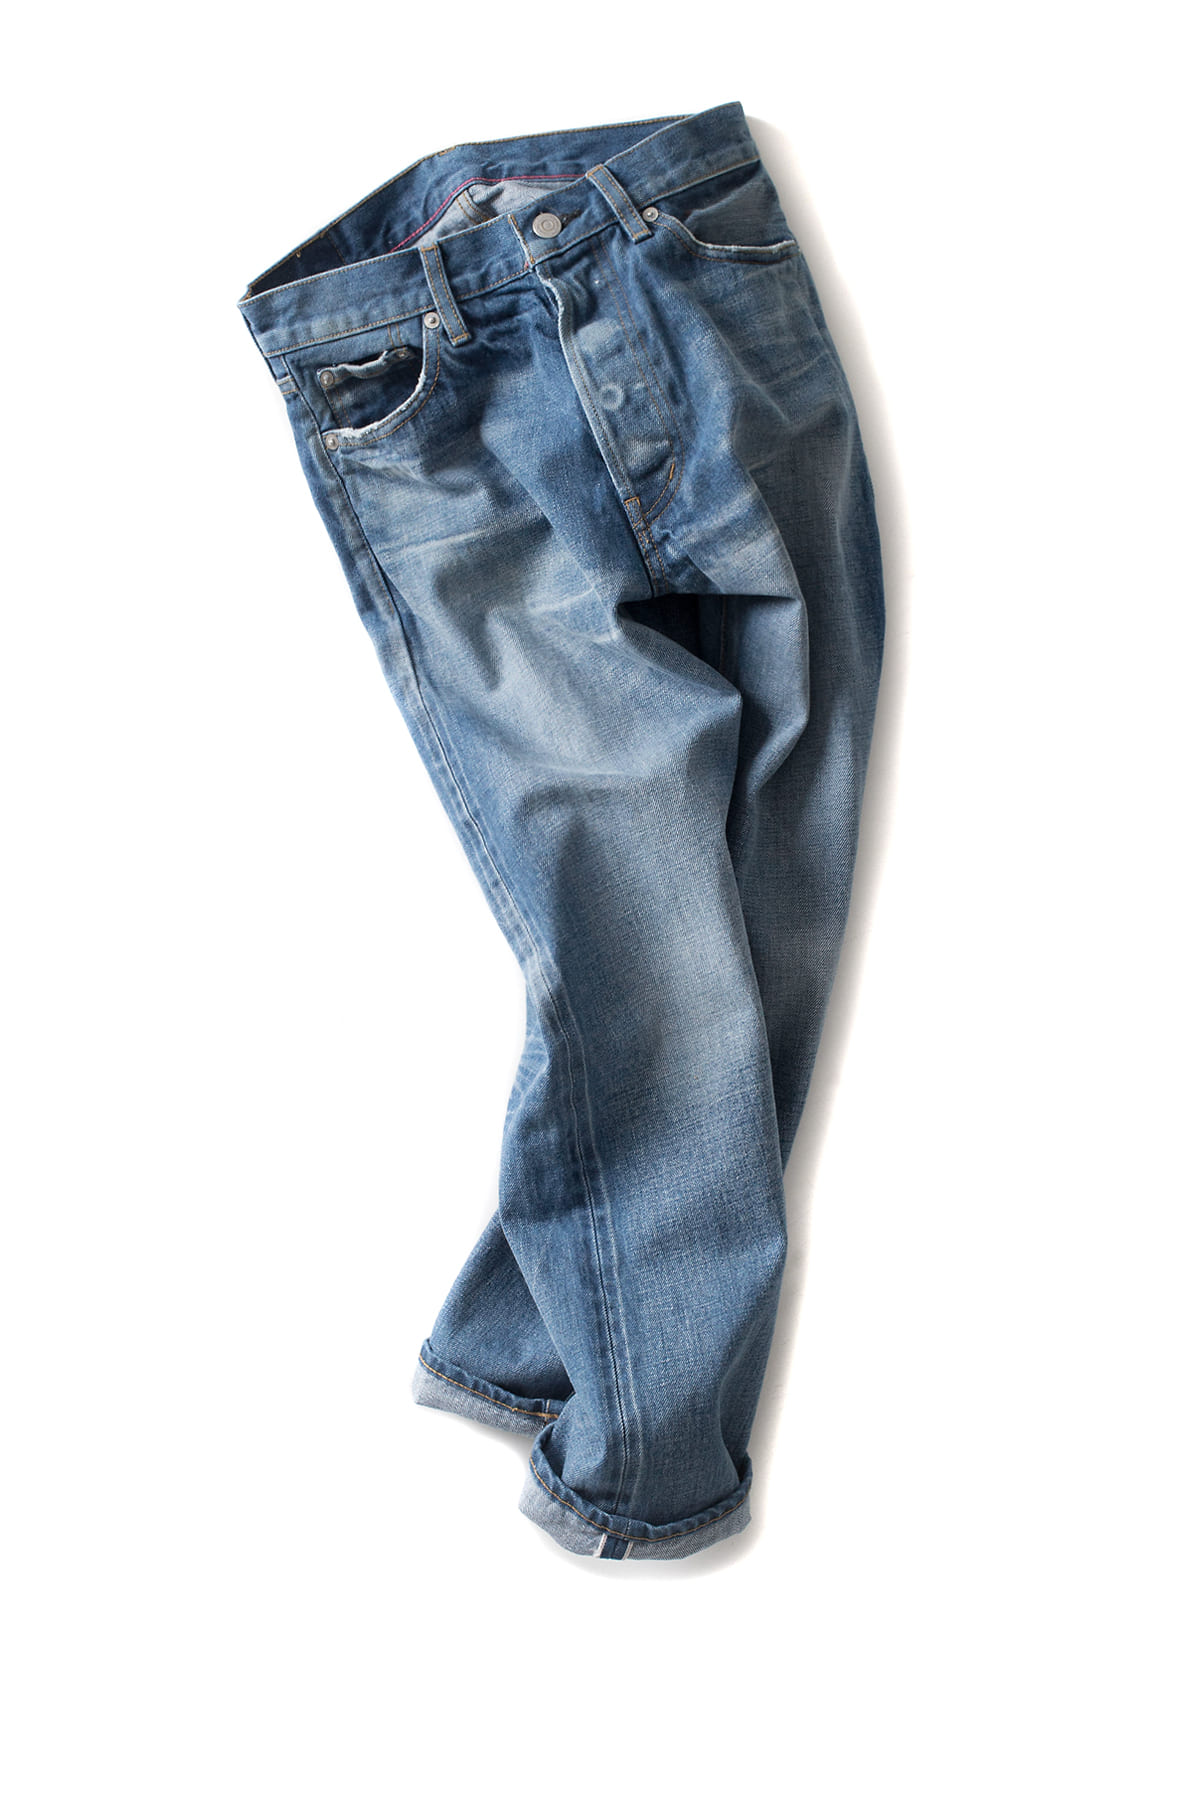 ordinary fits : 5pocket Ankle Denim Used Wash (3year)